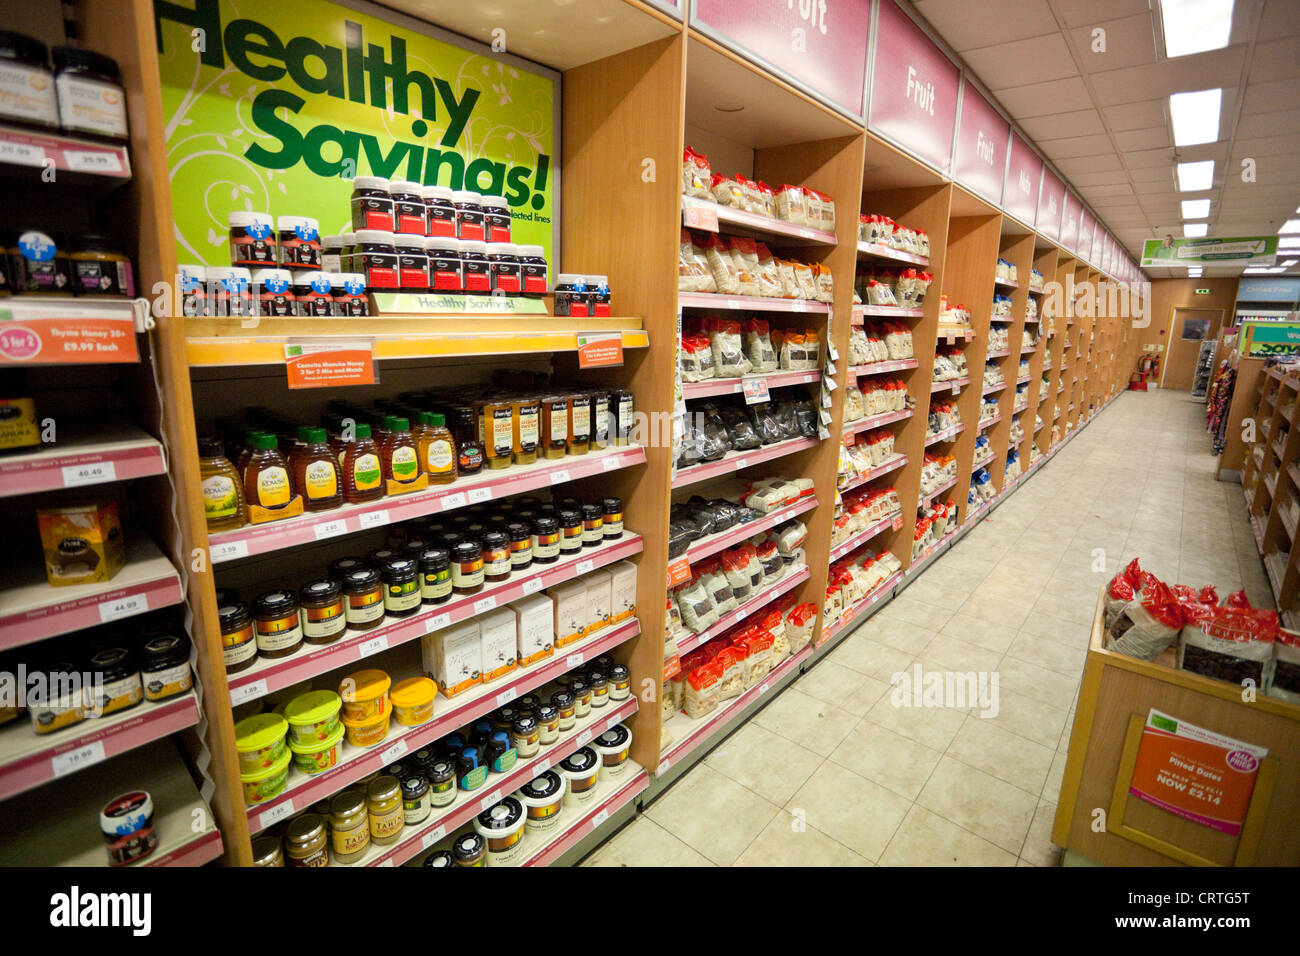 Health Food Shop Uk Stock Photos Health Food Shop Uk Stock within Health Food Shop